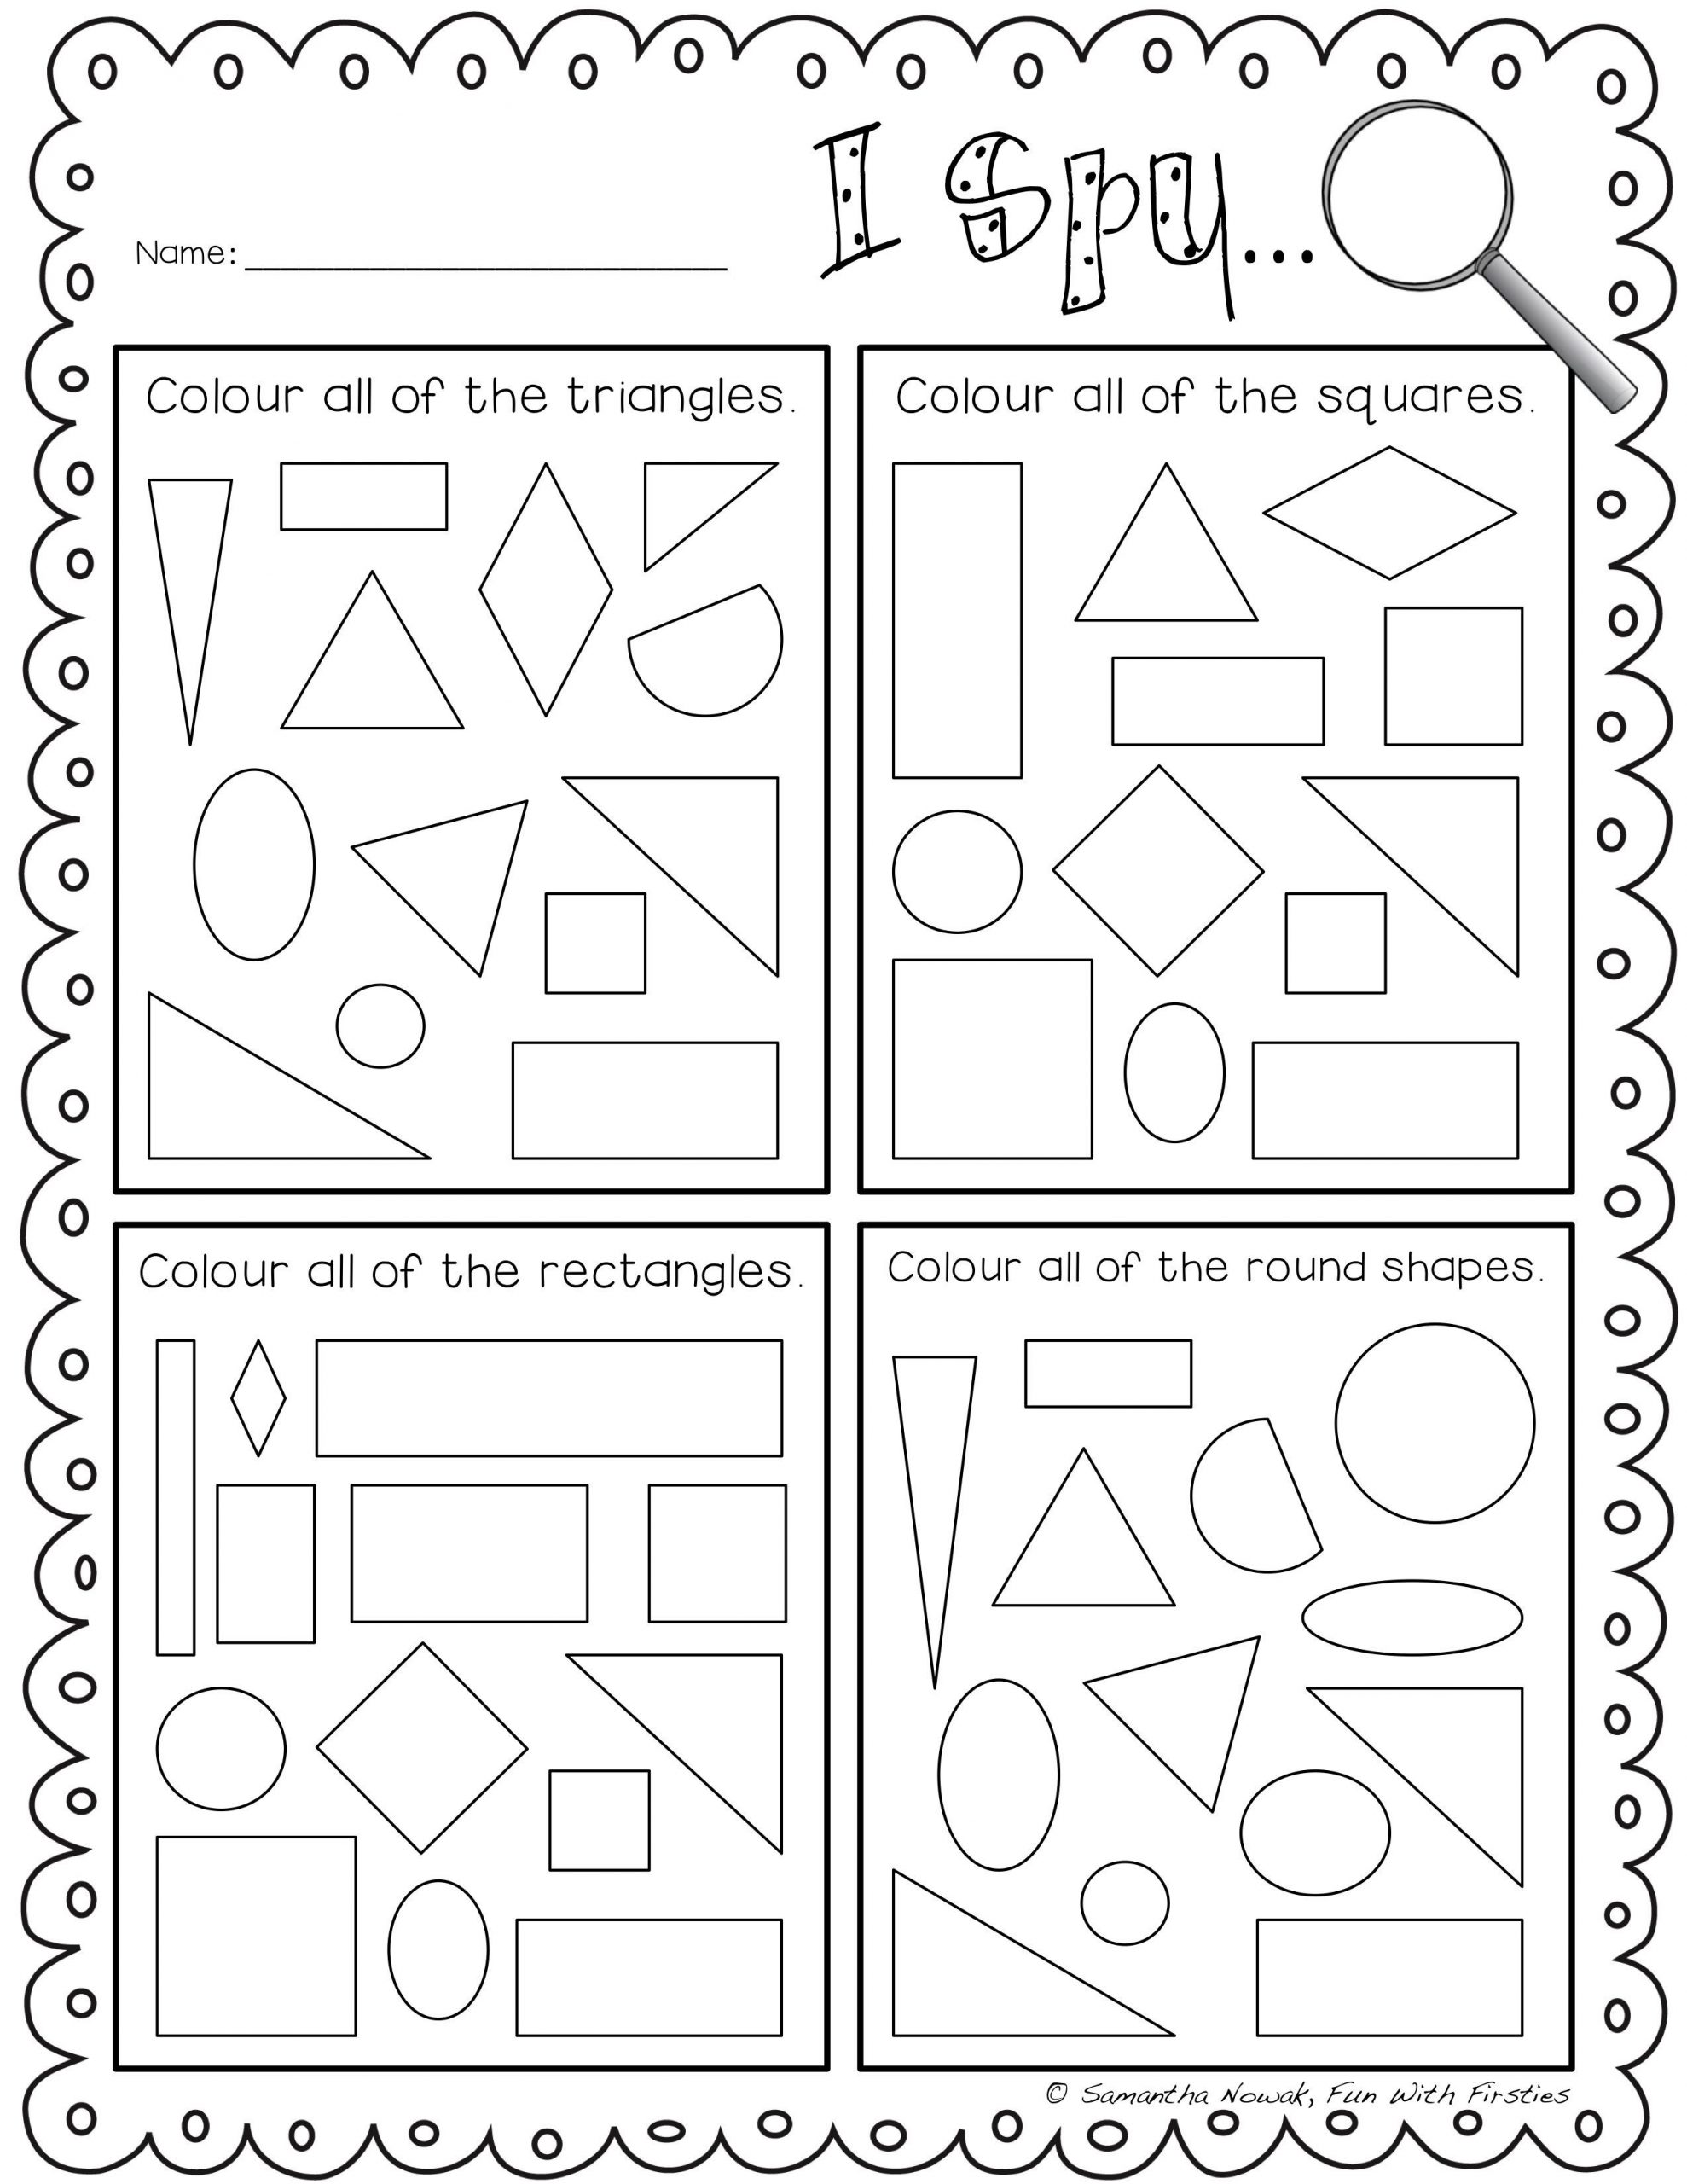 3d Shapes Worksheets 2nd Grade I Spy 2d Geometry Shapes Lour to Practice Identifying